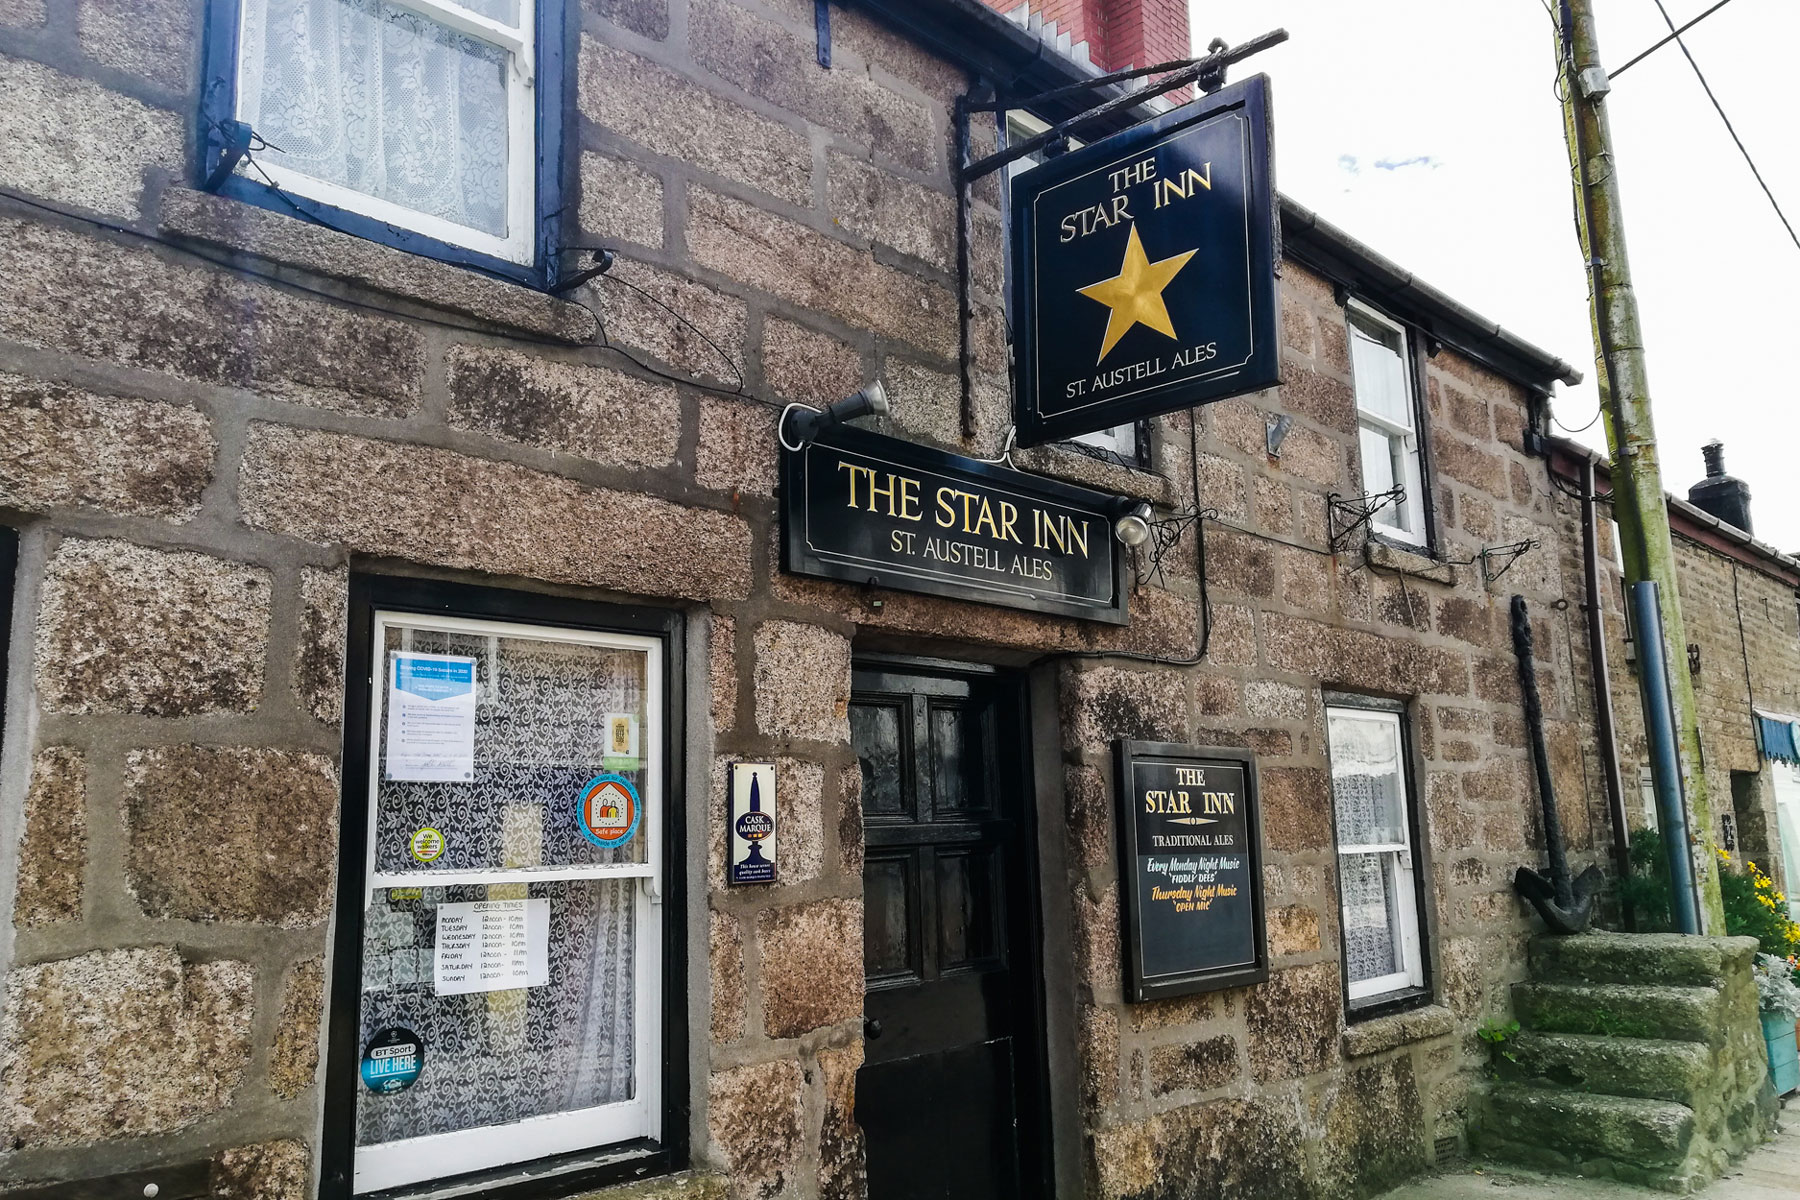 The Star Inn in St Just, Cornwall